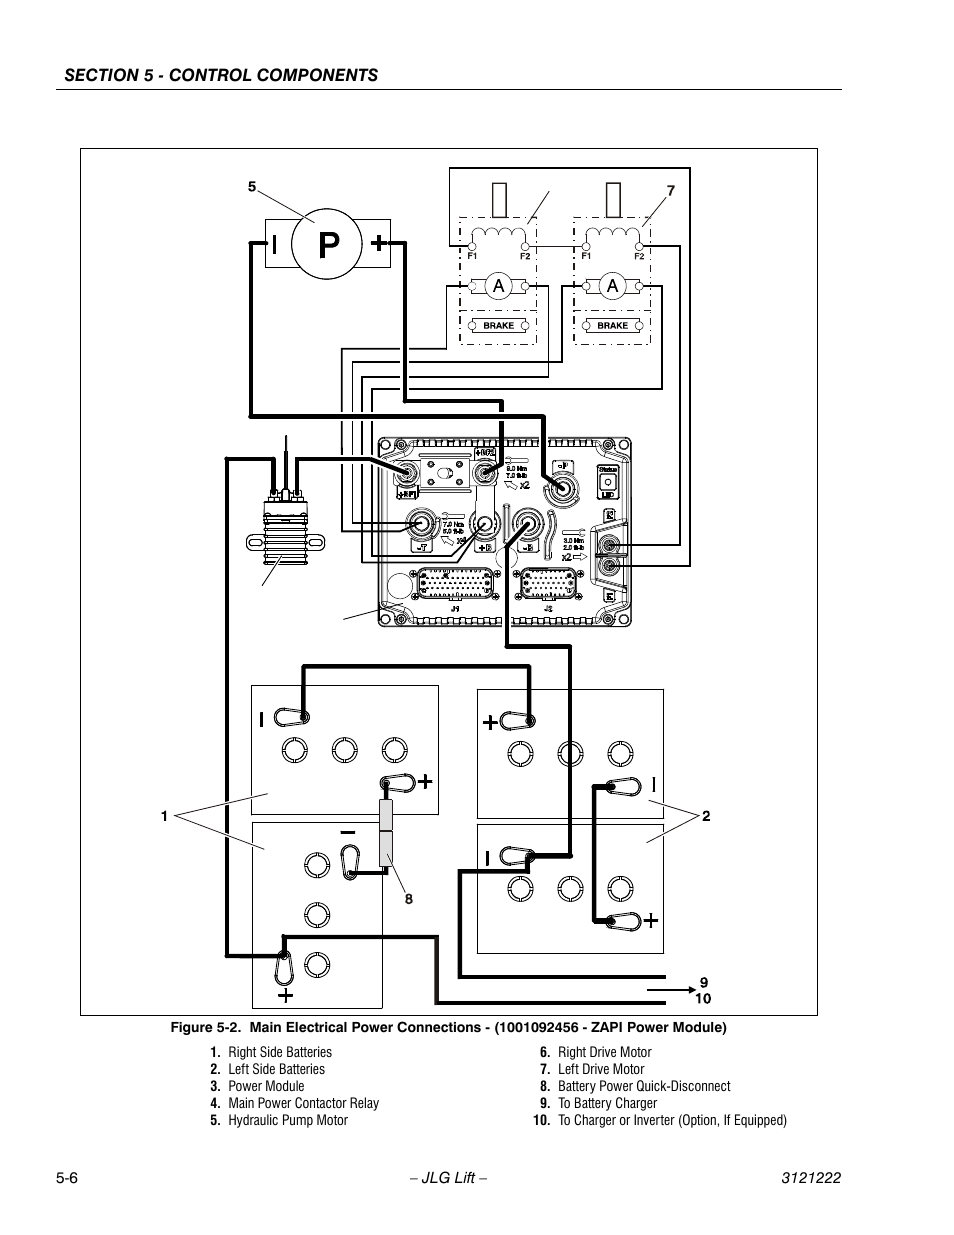 medium resolution of jlg battery charger wiring schematic